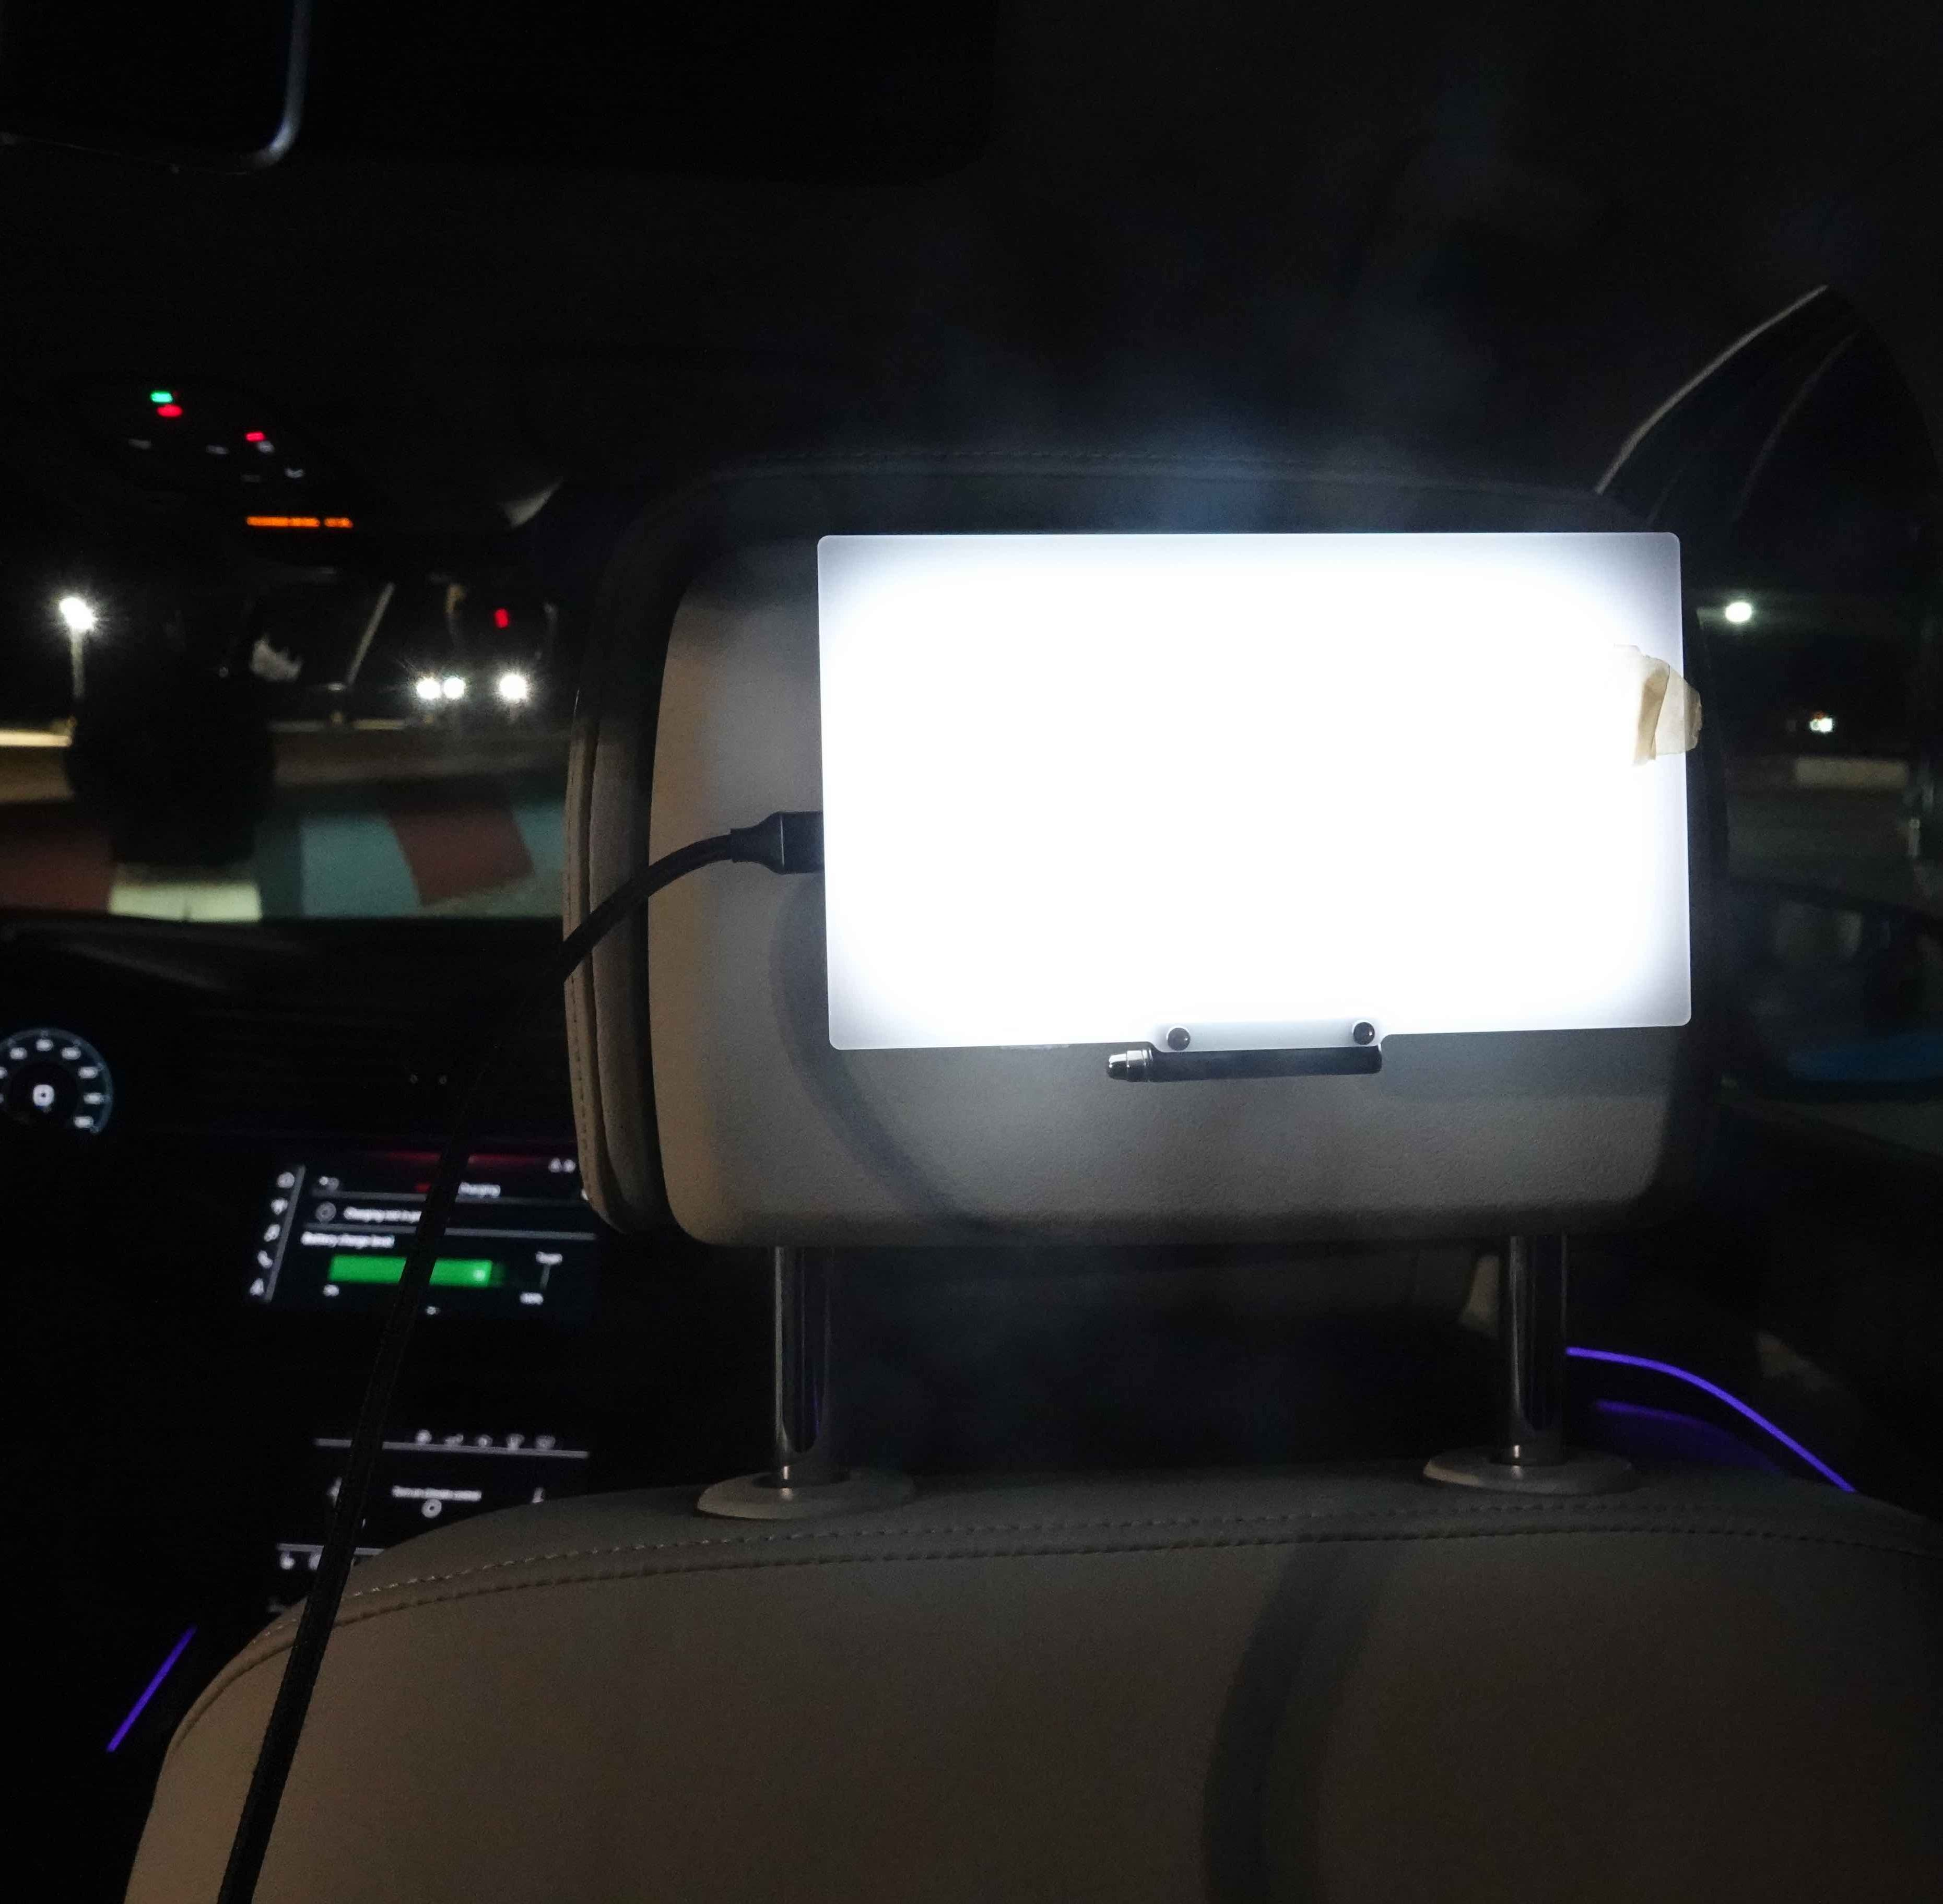 Backseat of Audi E-Tron car, rigged up with Virtual Reality viewer